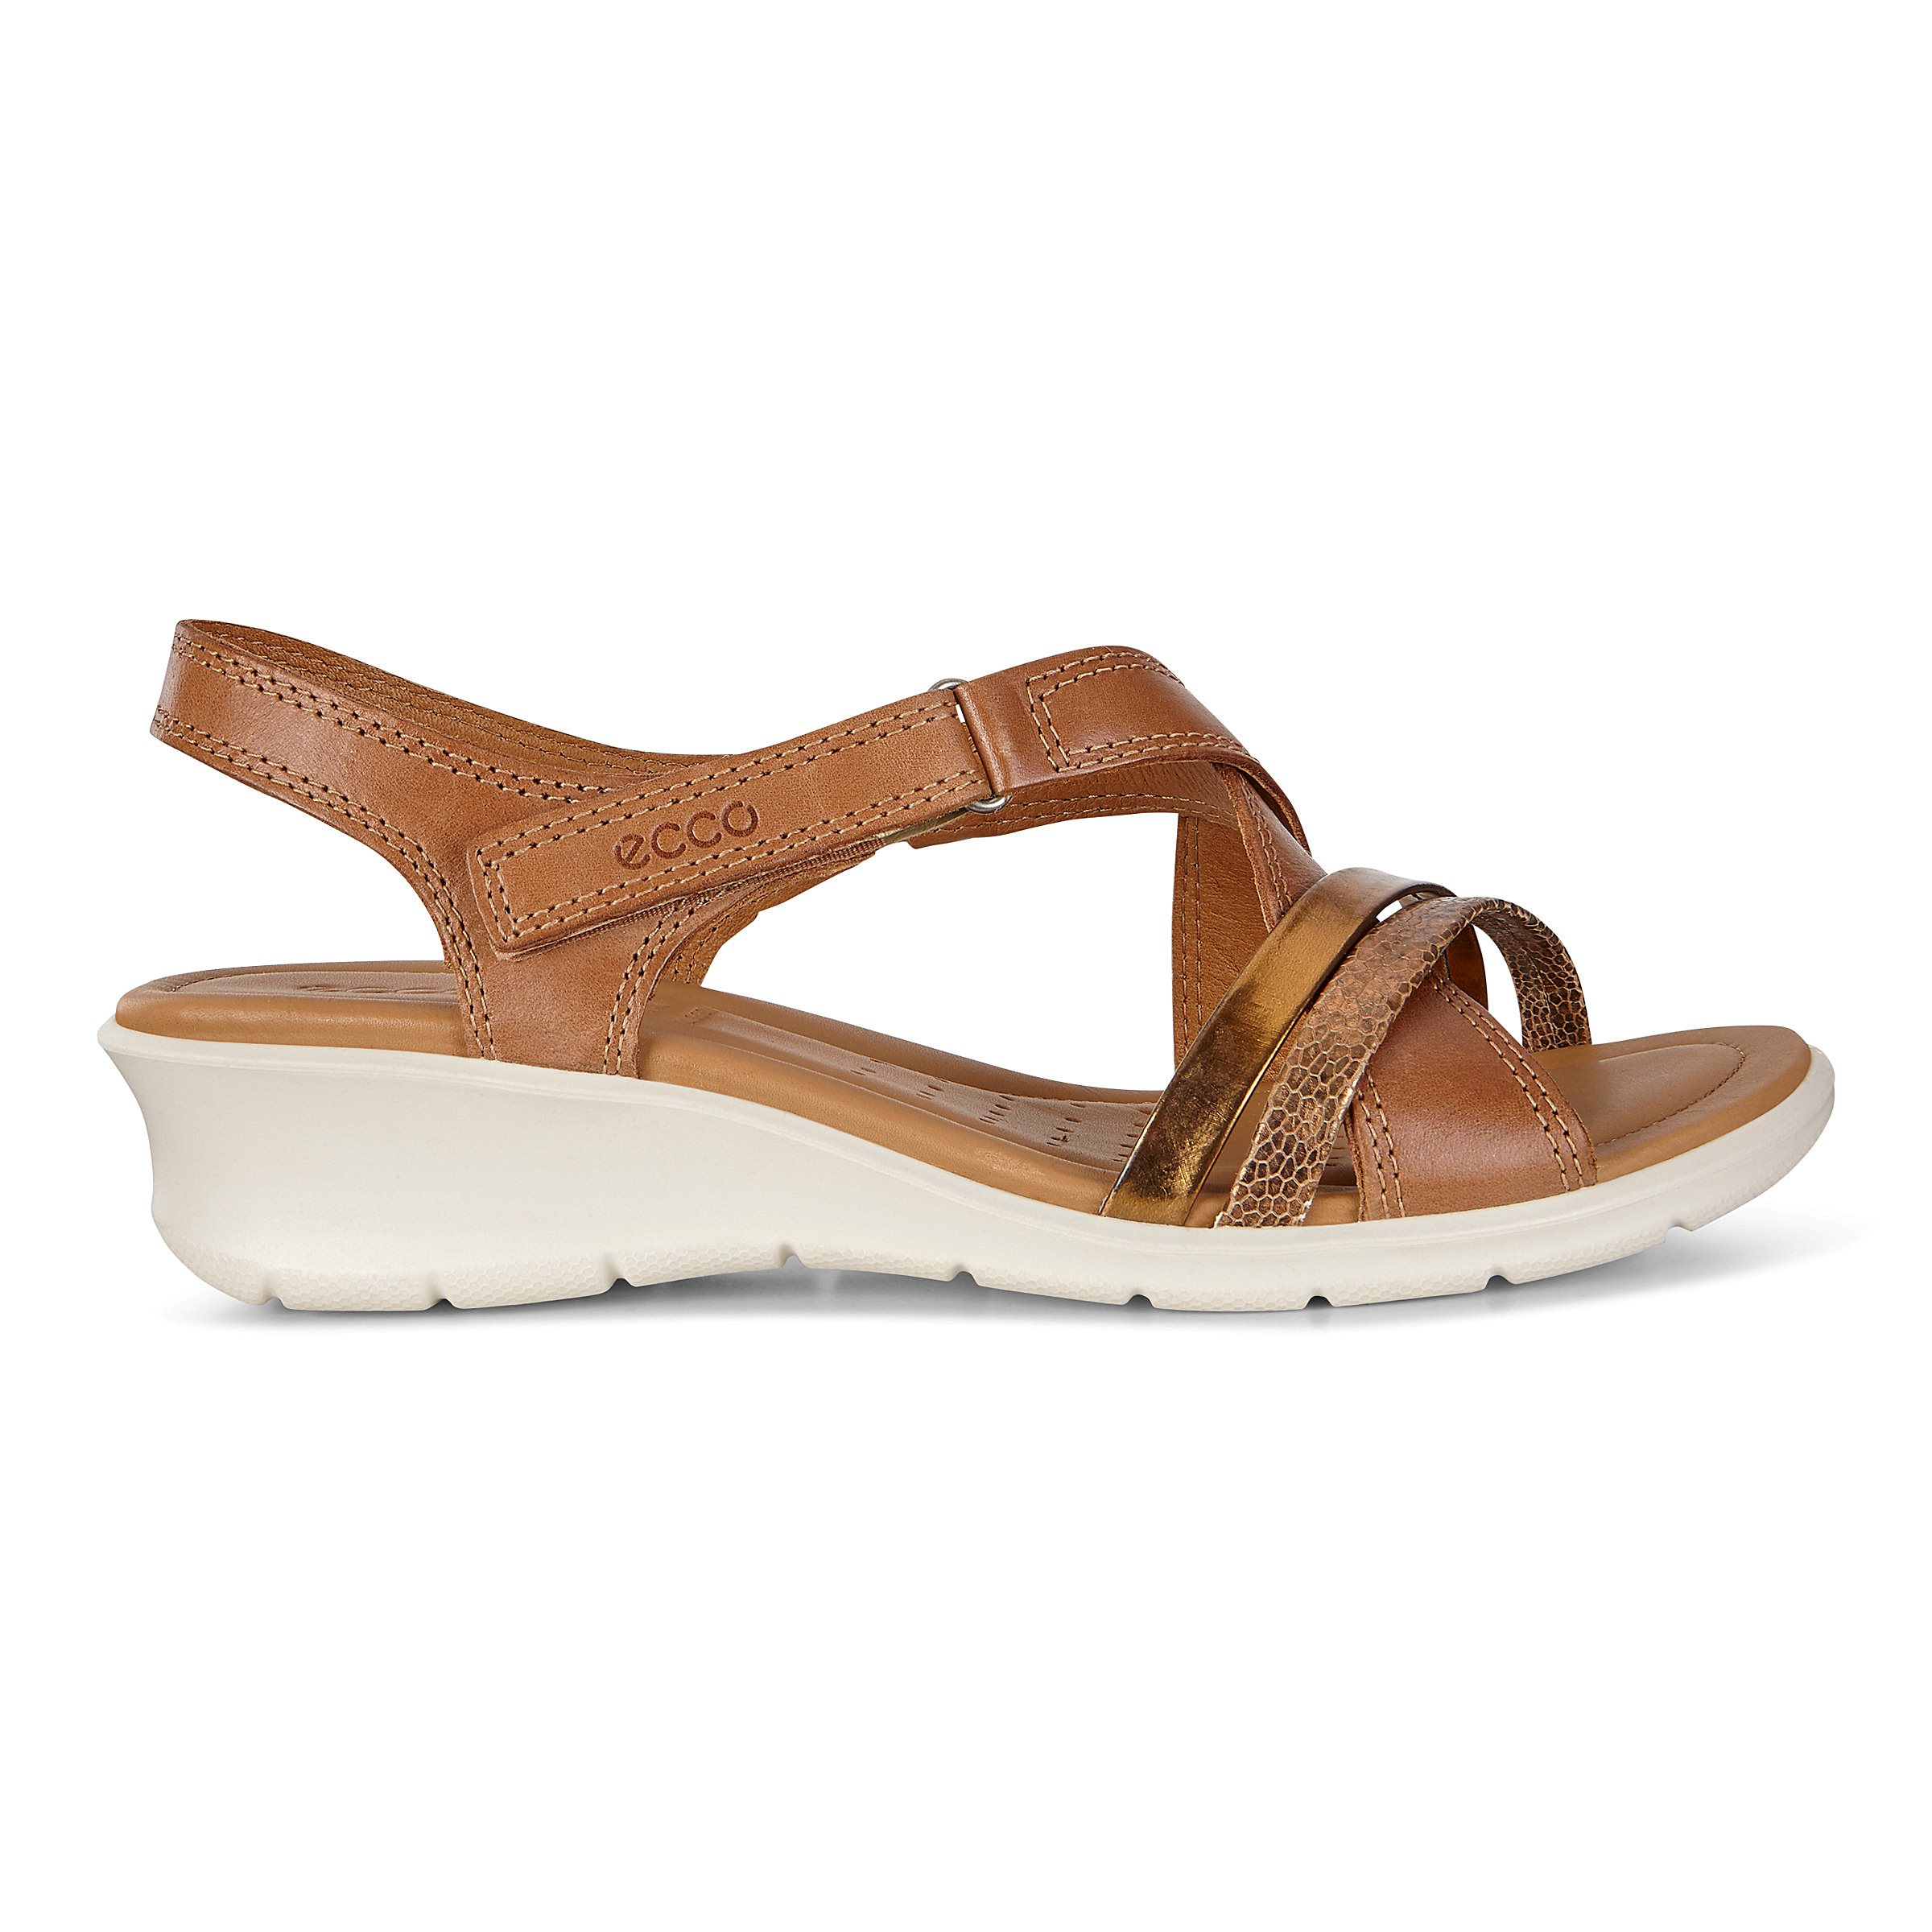 ECCO FELICIA SANDAL | HEELS | SHOES | WOMEN | ECCO® OFFICIAL